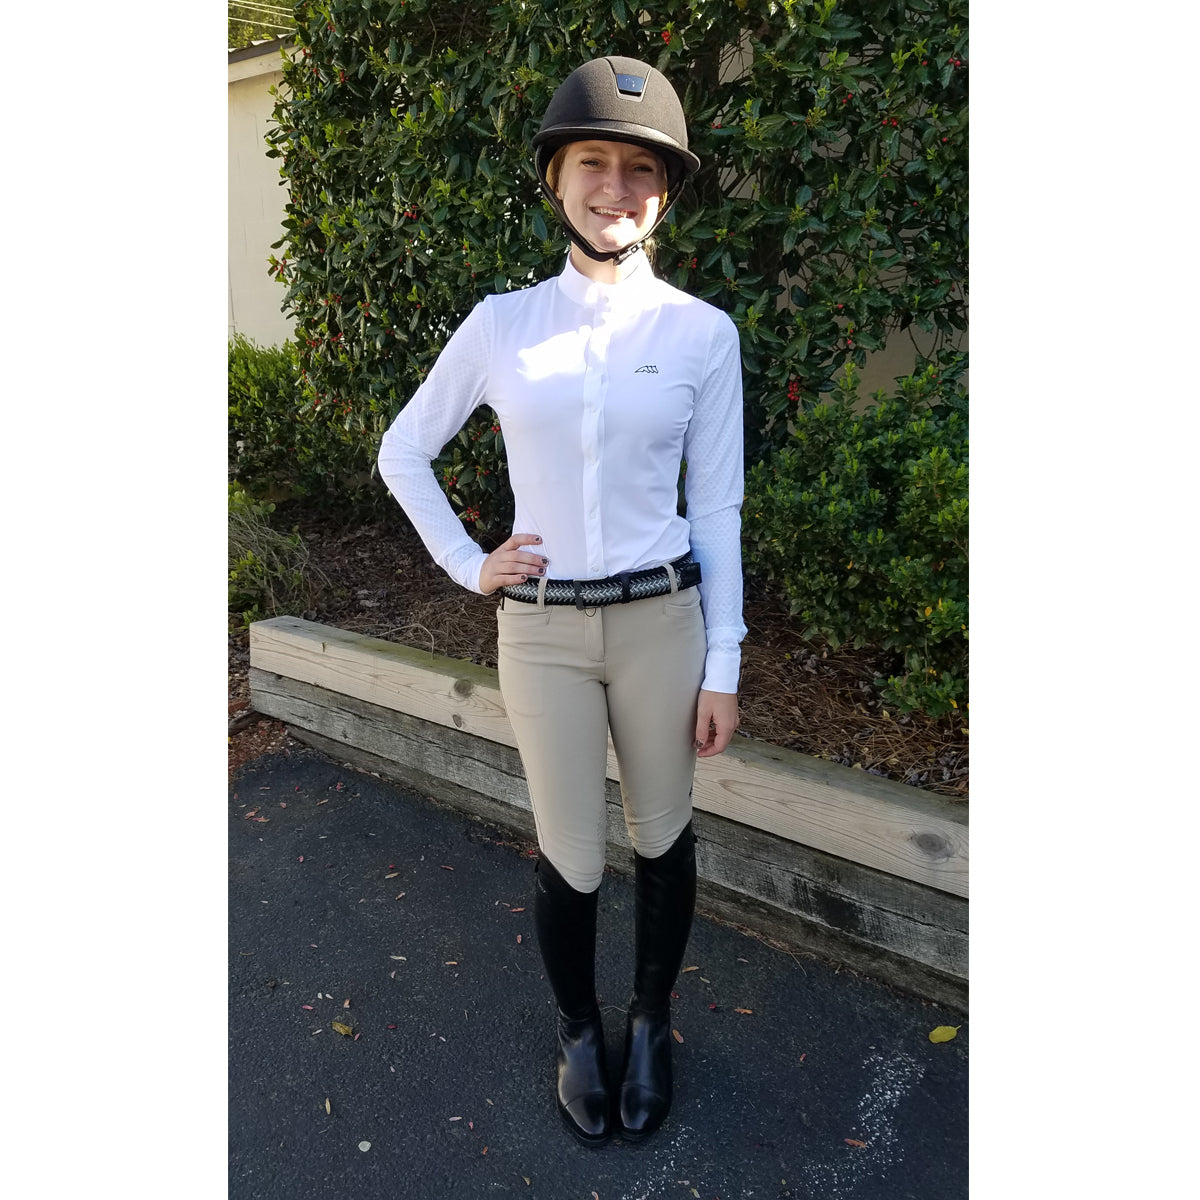 Lizzie wearing Equiline Ash Breeches